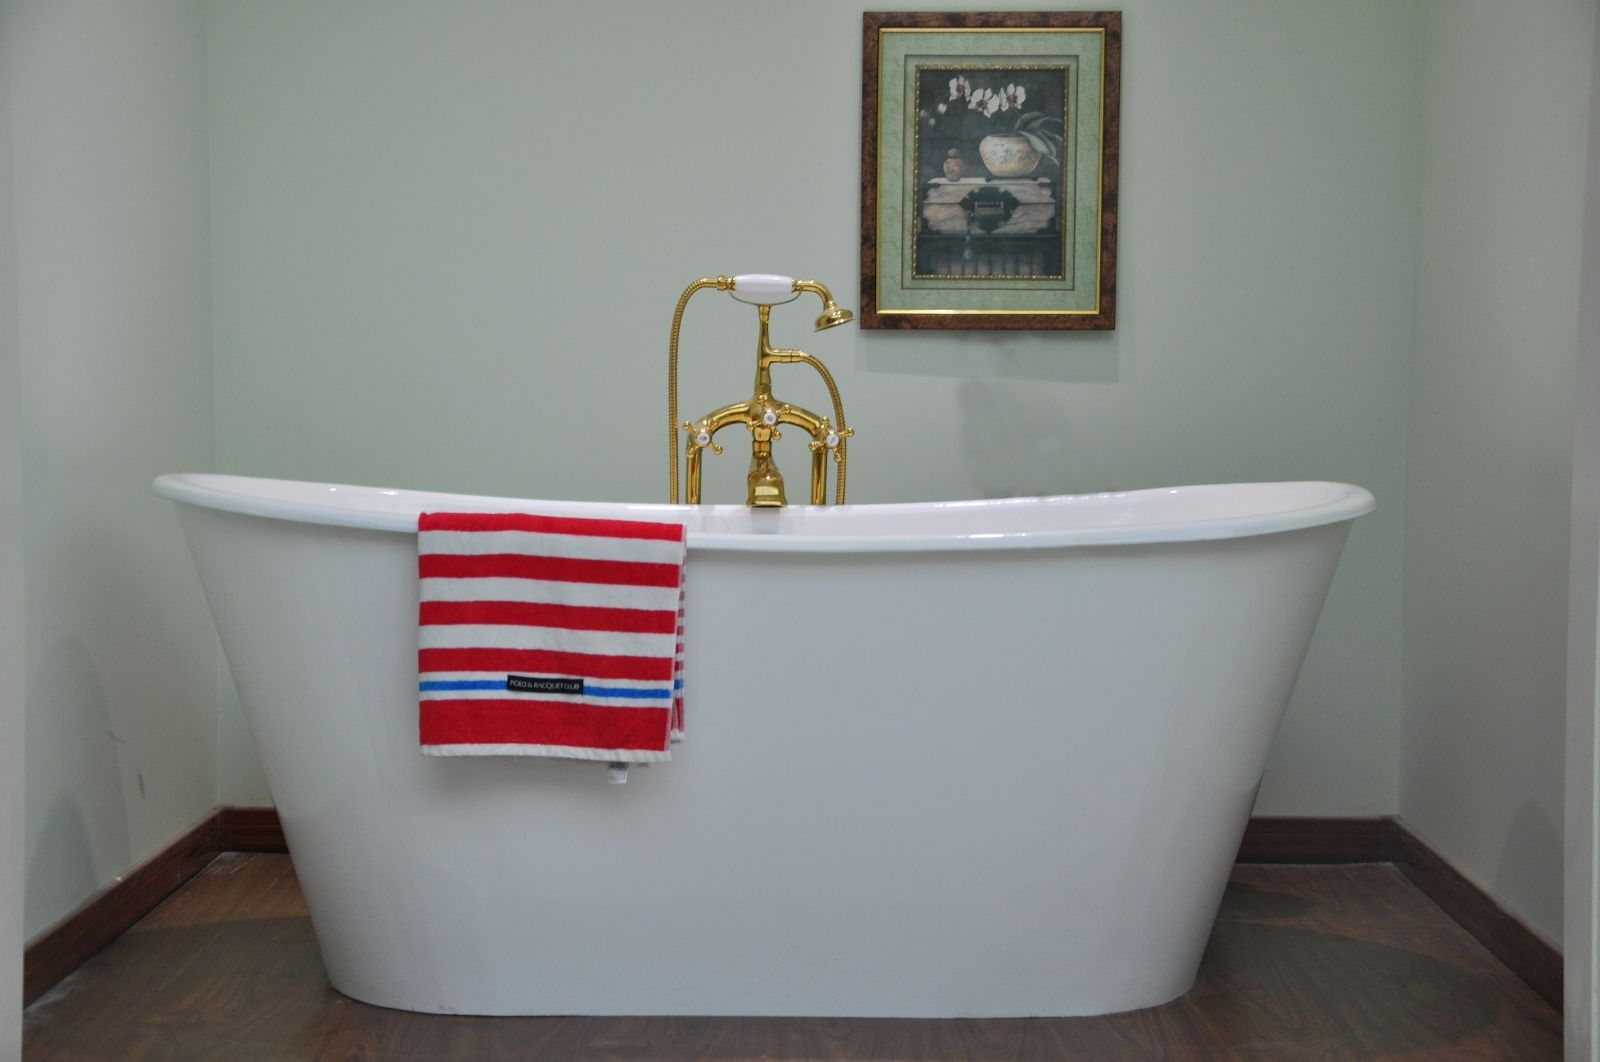 Reve Cast Iron Freestanding Bath. kohler reve bathtub. bath care and ...